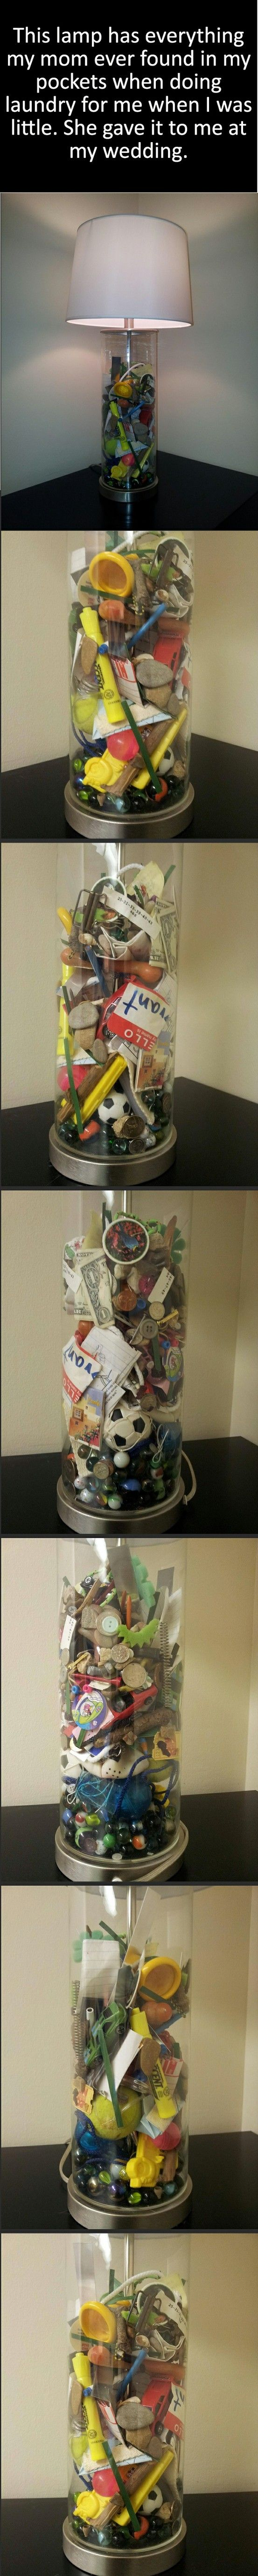 A mother saved all the things she found on his son pockets when doing the laundry. She gave him this lamp with all things found for his wedding. thats such a cute idea!